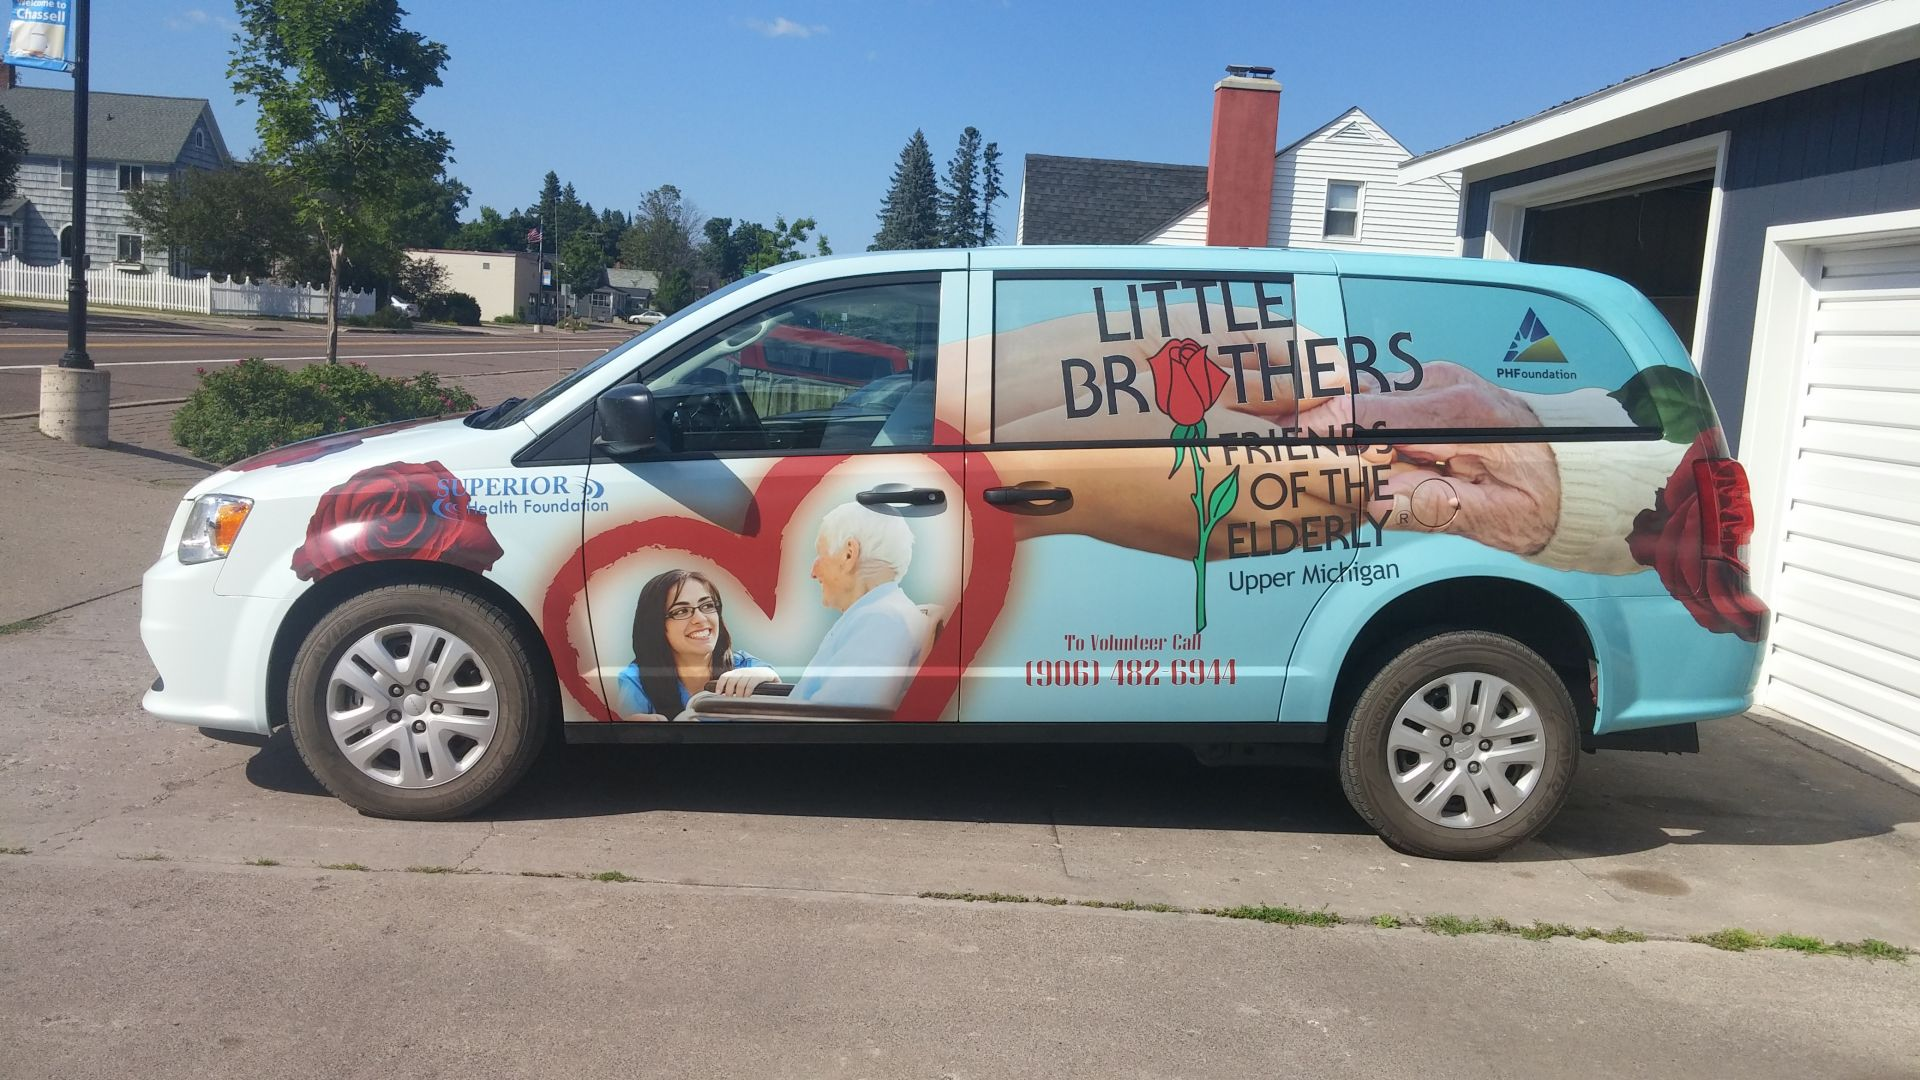 Little Brother's Friends of the Elderly Vehicle Wrap